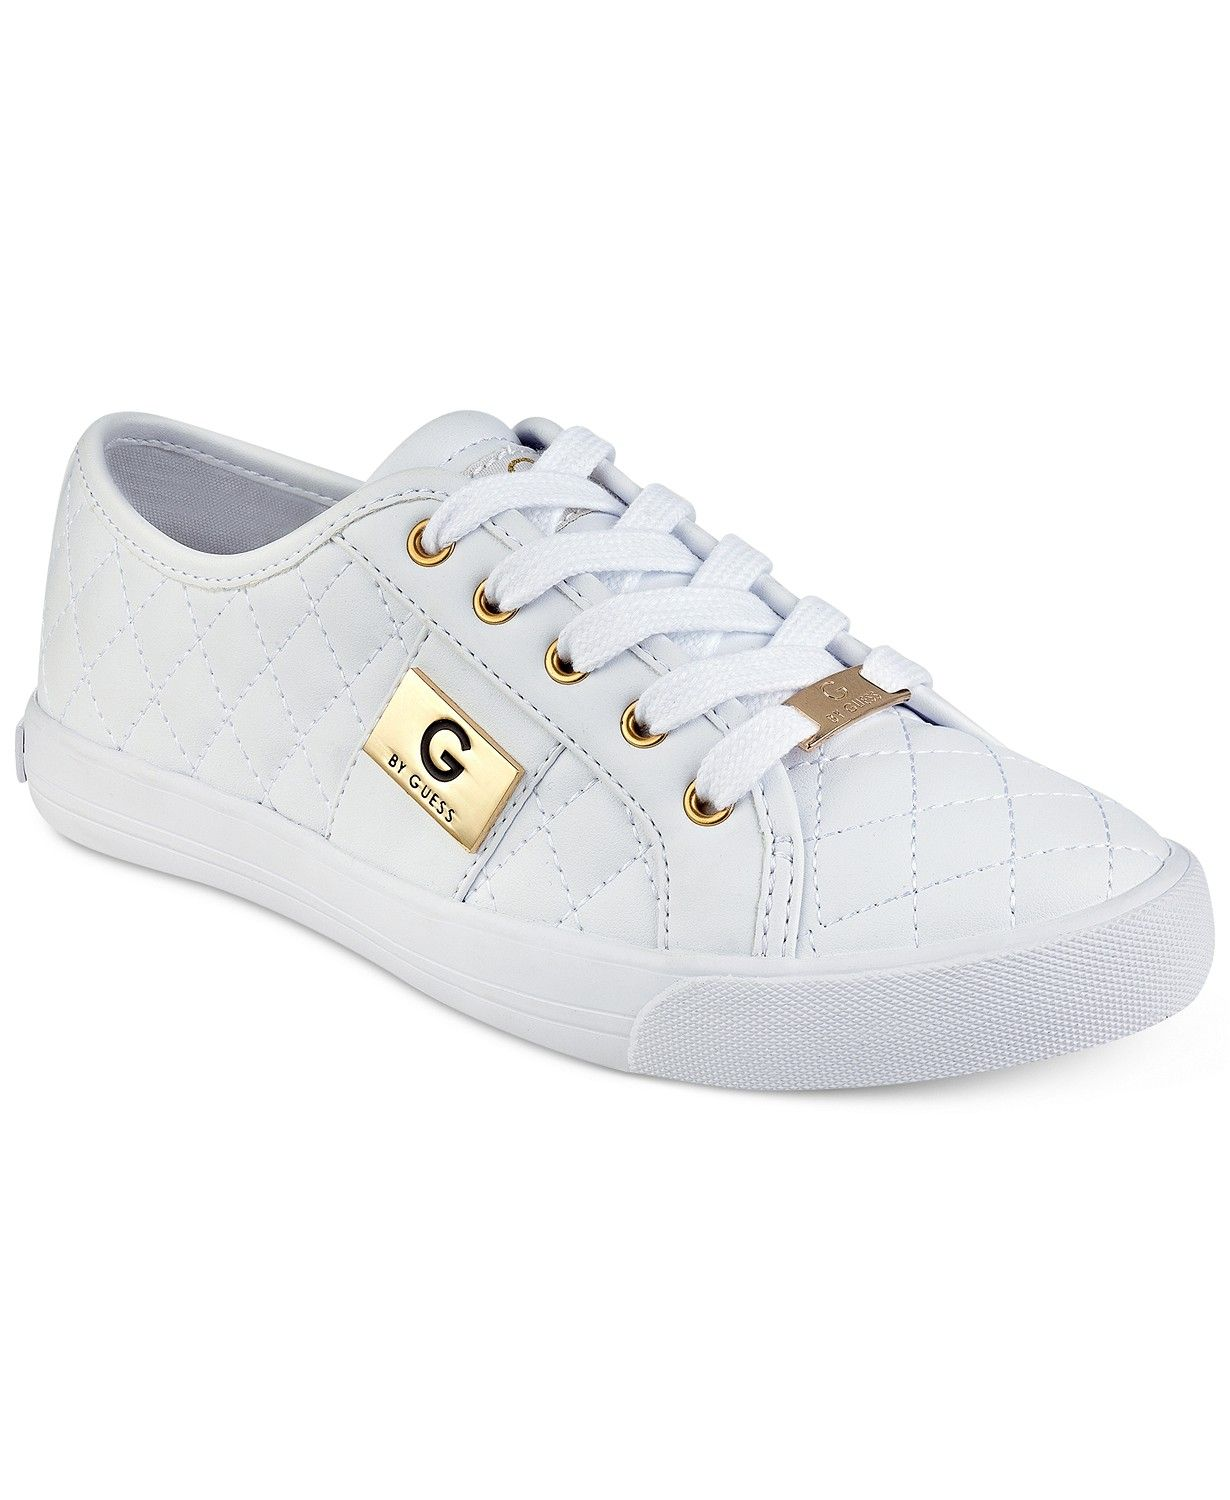 guess slip on trainers